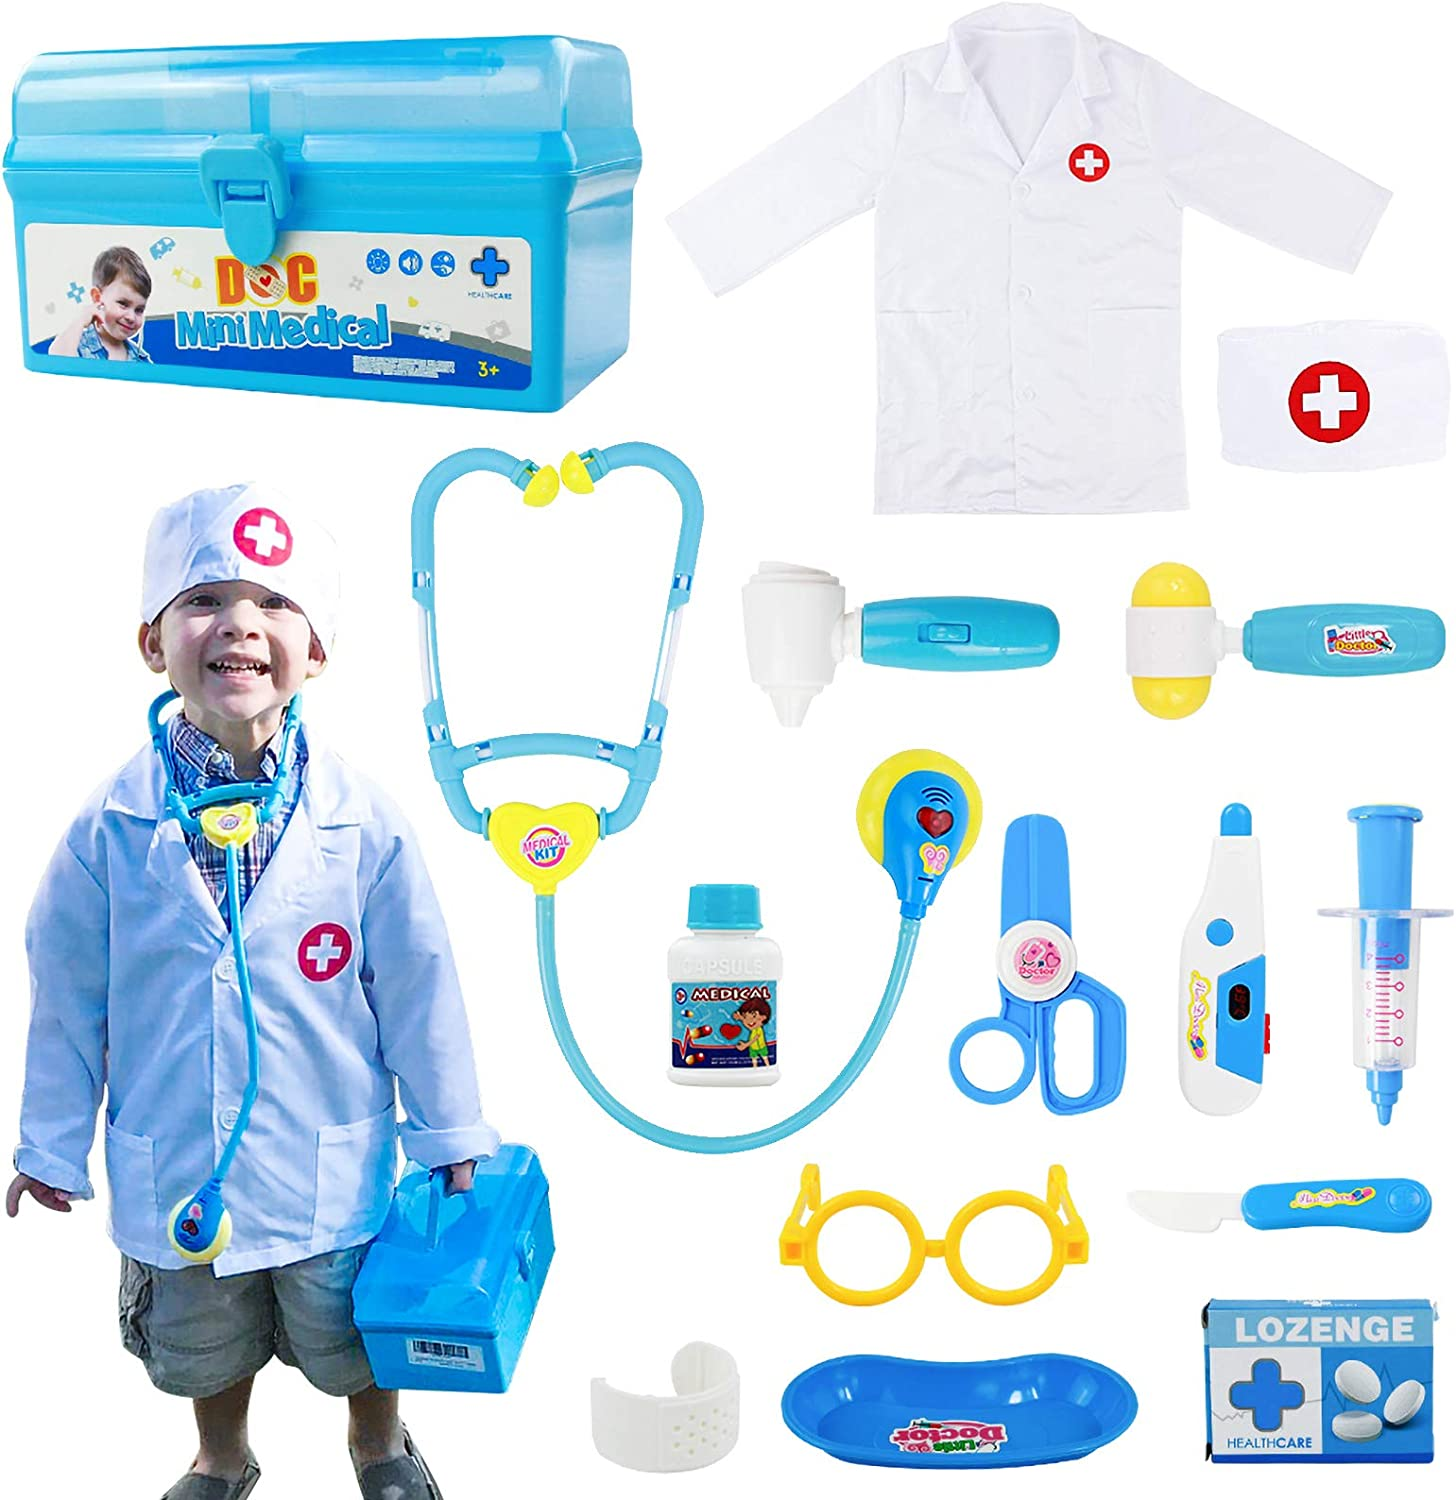 Fajiabao Doctor Kits for Kids Medical Playset Toys Doctor Coat Indoor  Family Cosplay Party Games Dress Up Costume Role Pretend Play Festival  Birthday